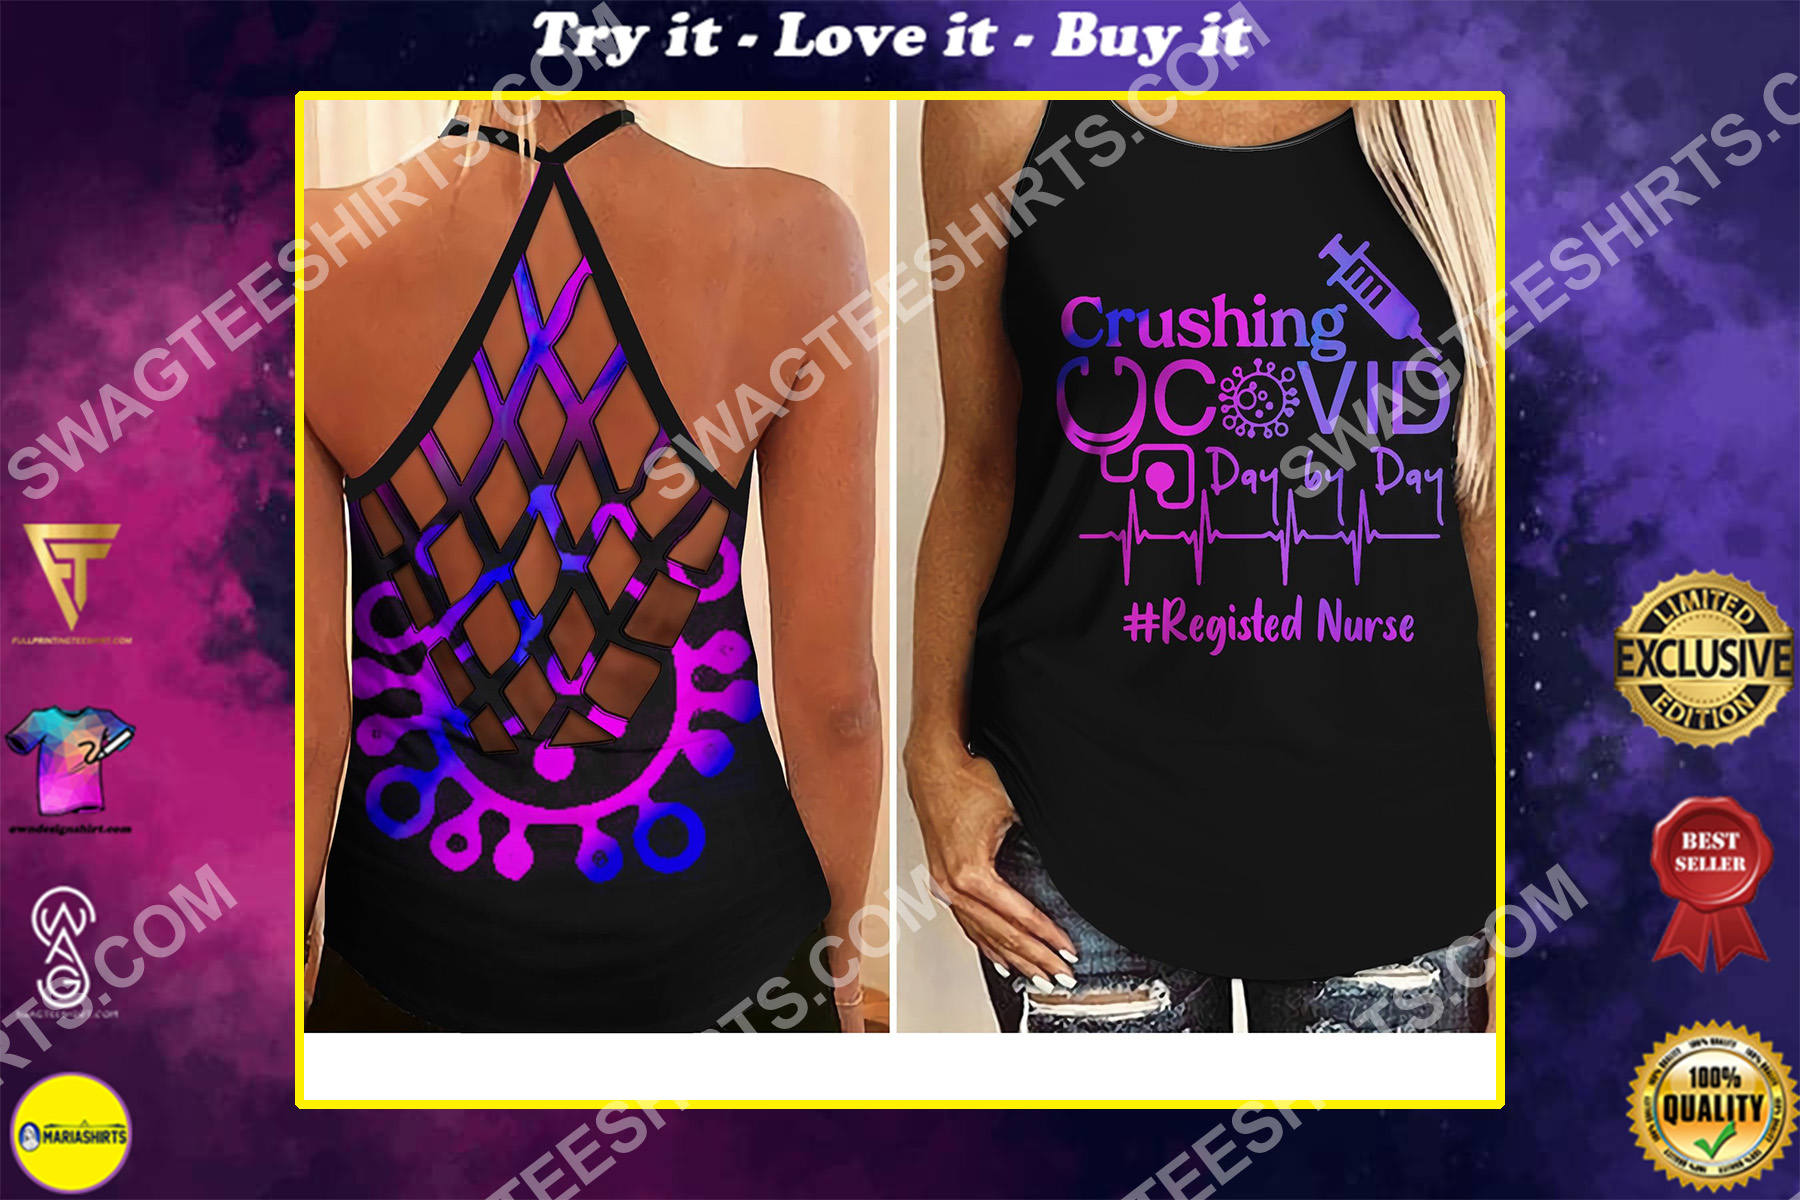 crushing registed nurse day by day all over printed criss-cross tank top